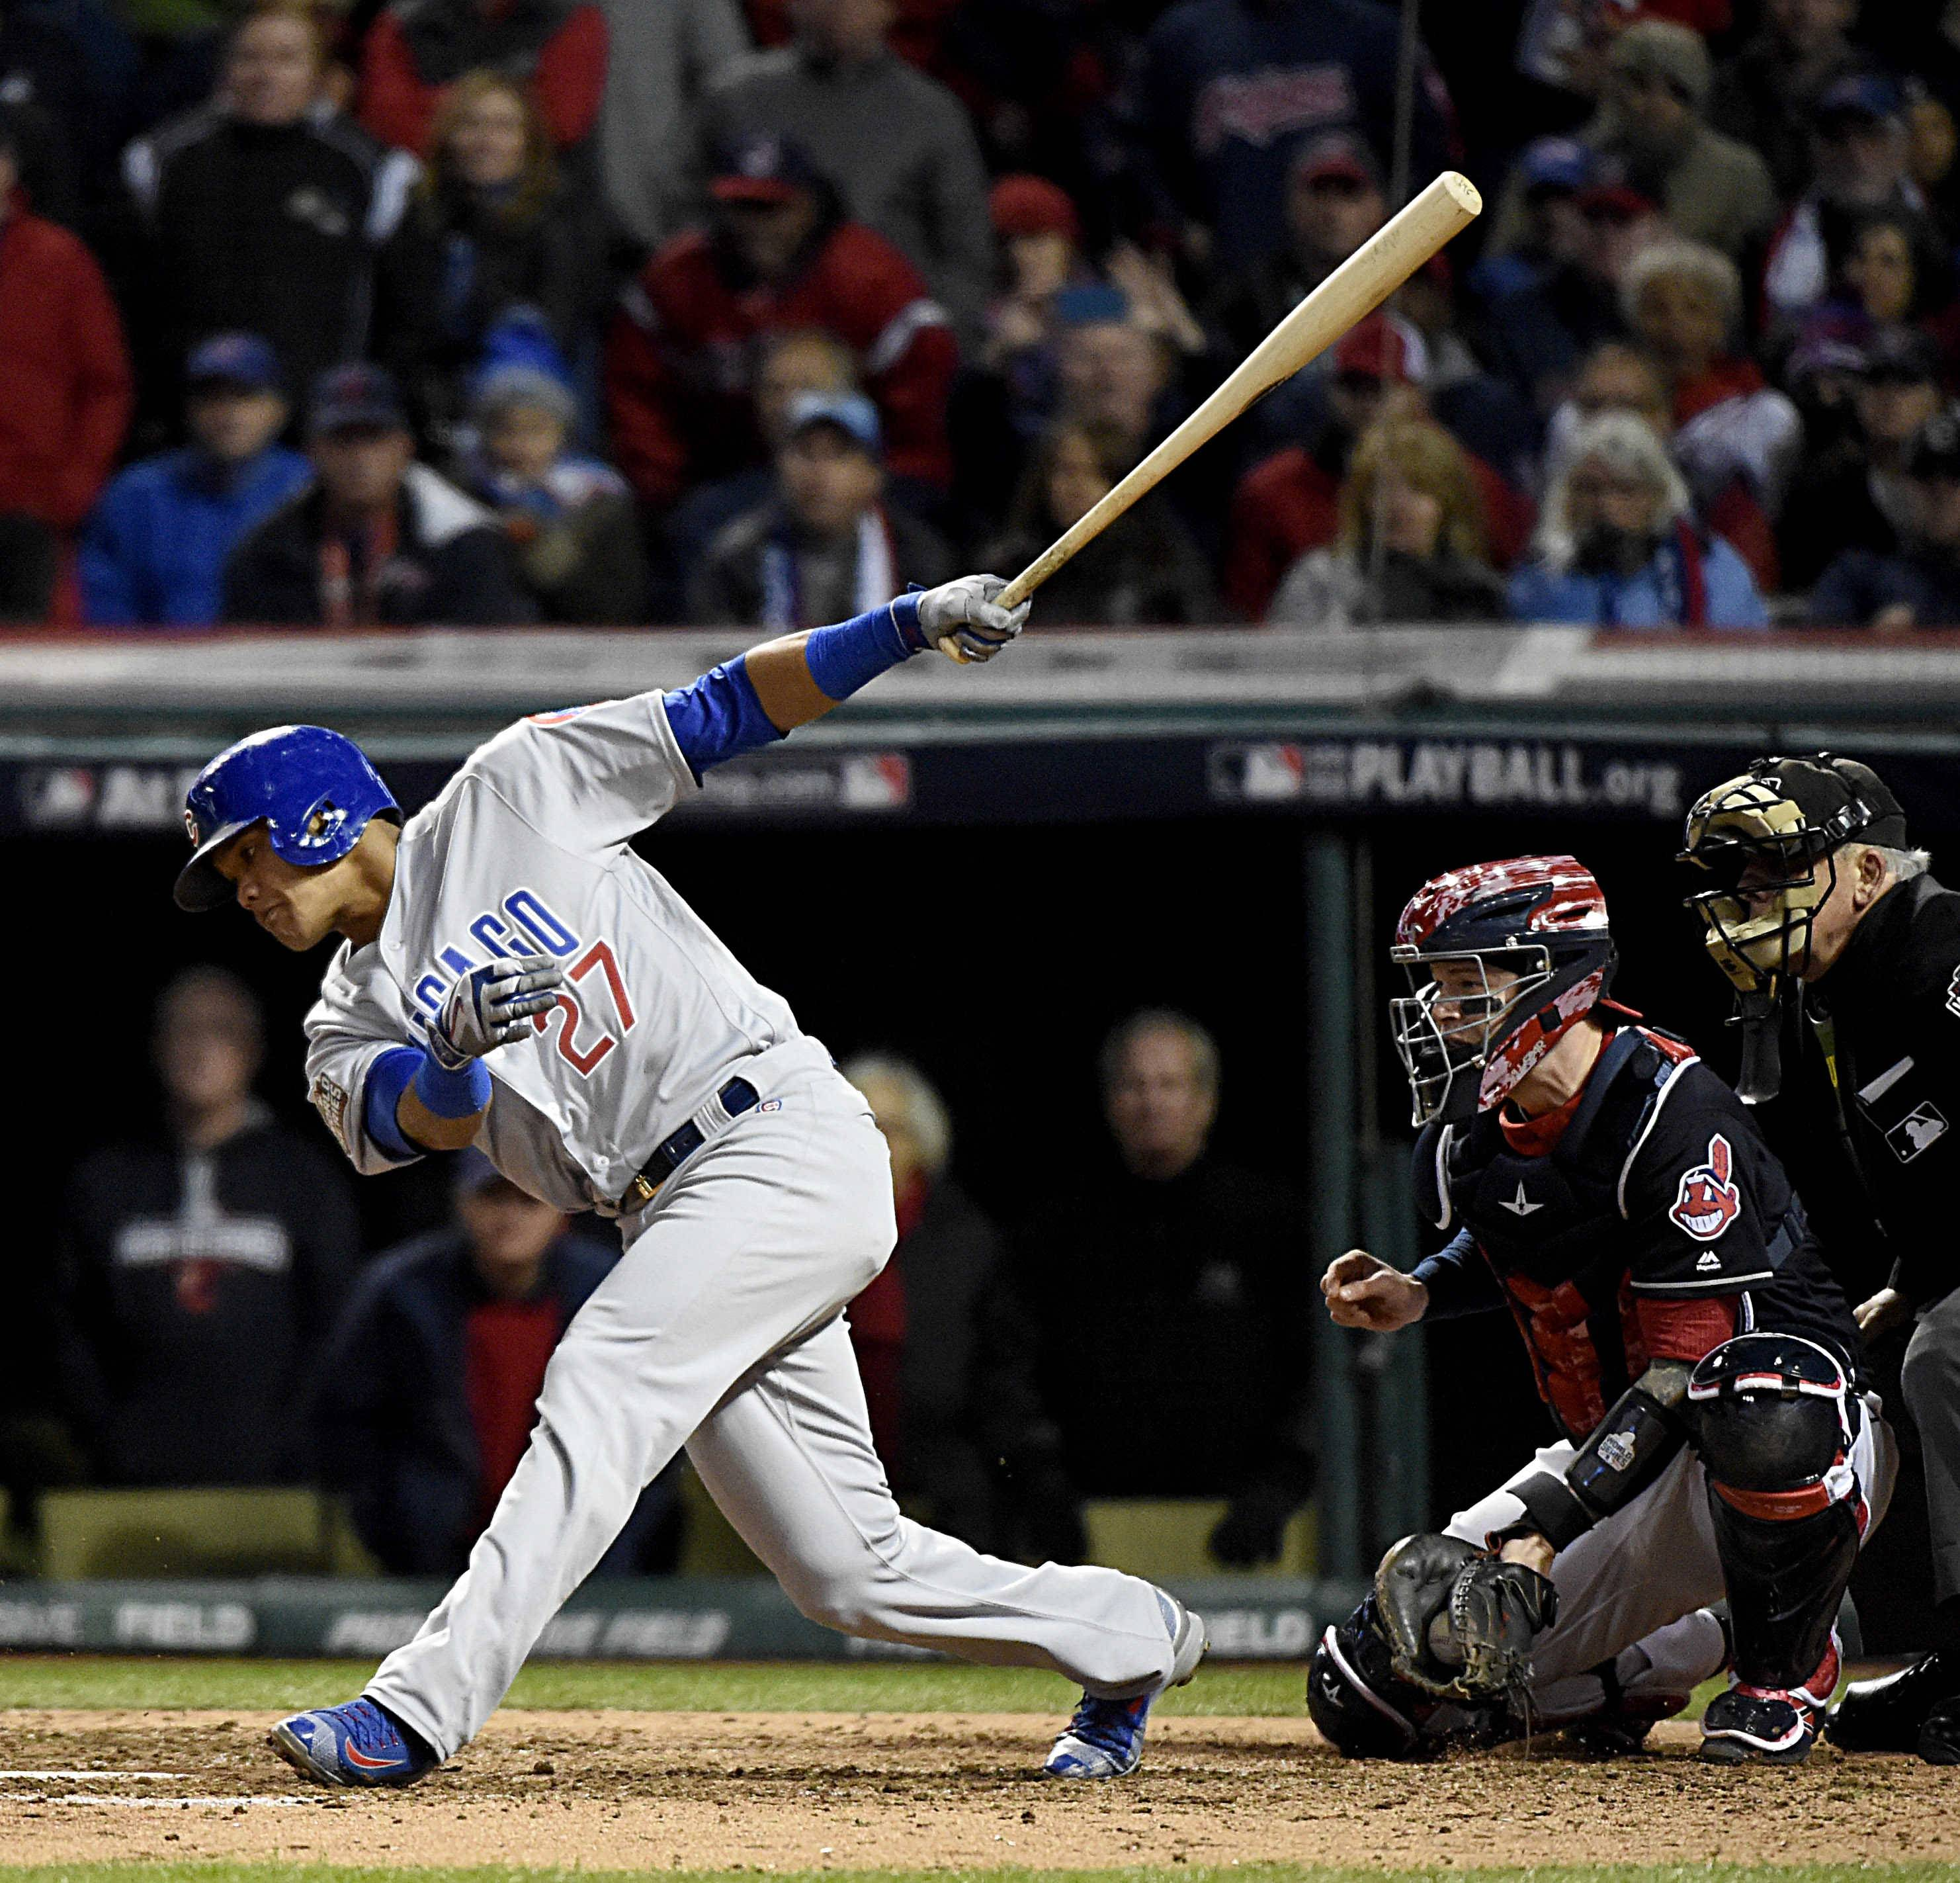 John Starks/jstarks@dailyherald.comIndians hurler Cory Kluber delivers in this multiple exposure image during Game 1 of the Major League Baseball World Series between the Cleveland Indians and the Chicago Cubs Tuesday, Oct. 25, 2016, in Cleveland.